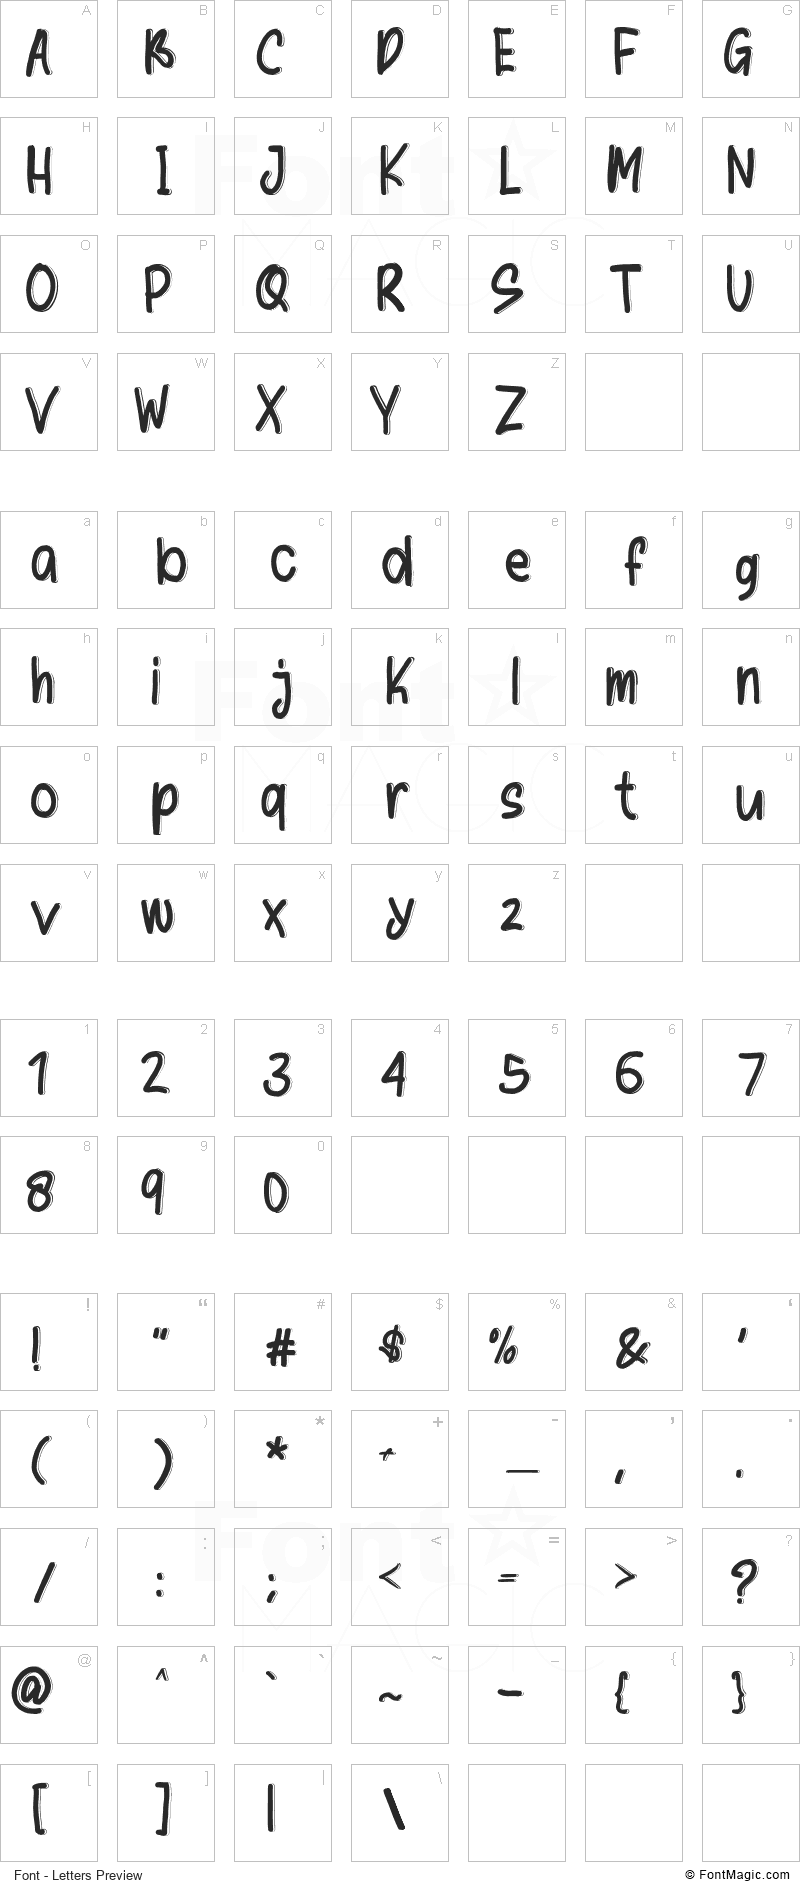 Writter Font - All Latters Preview Chart